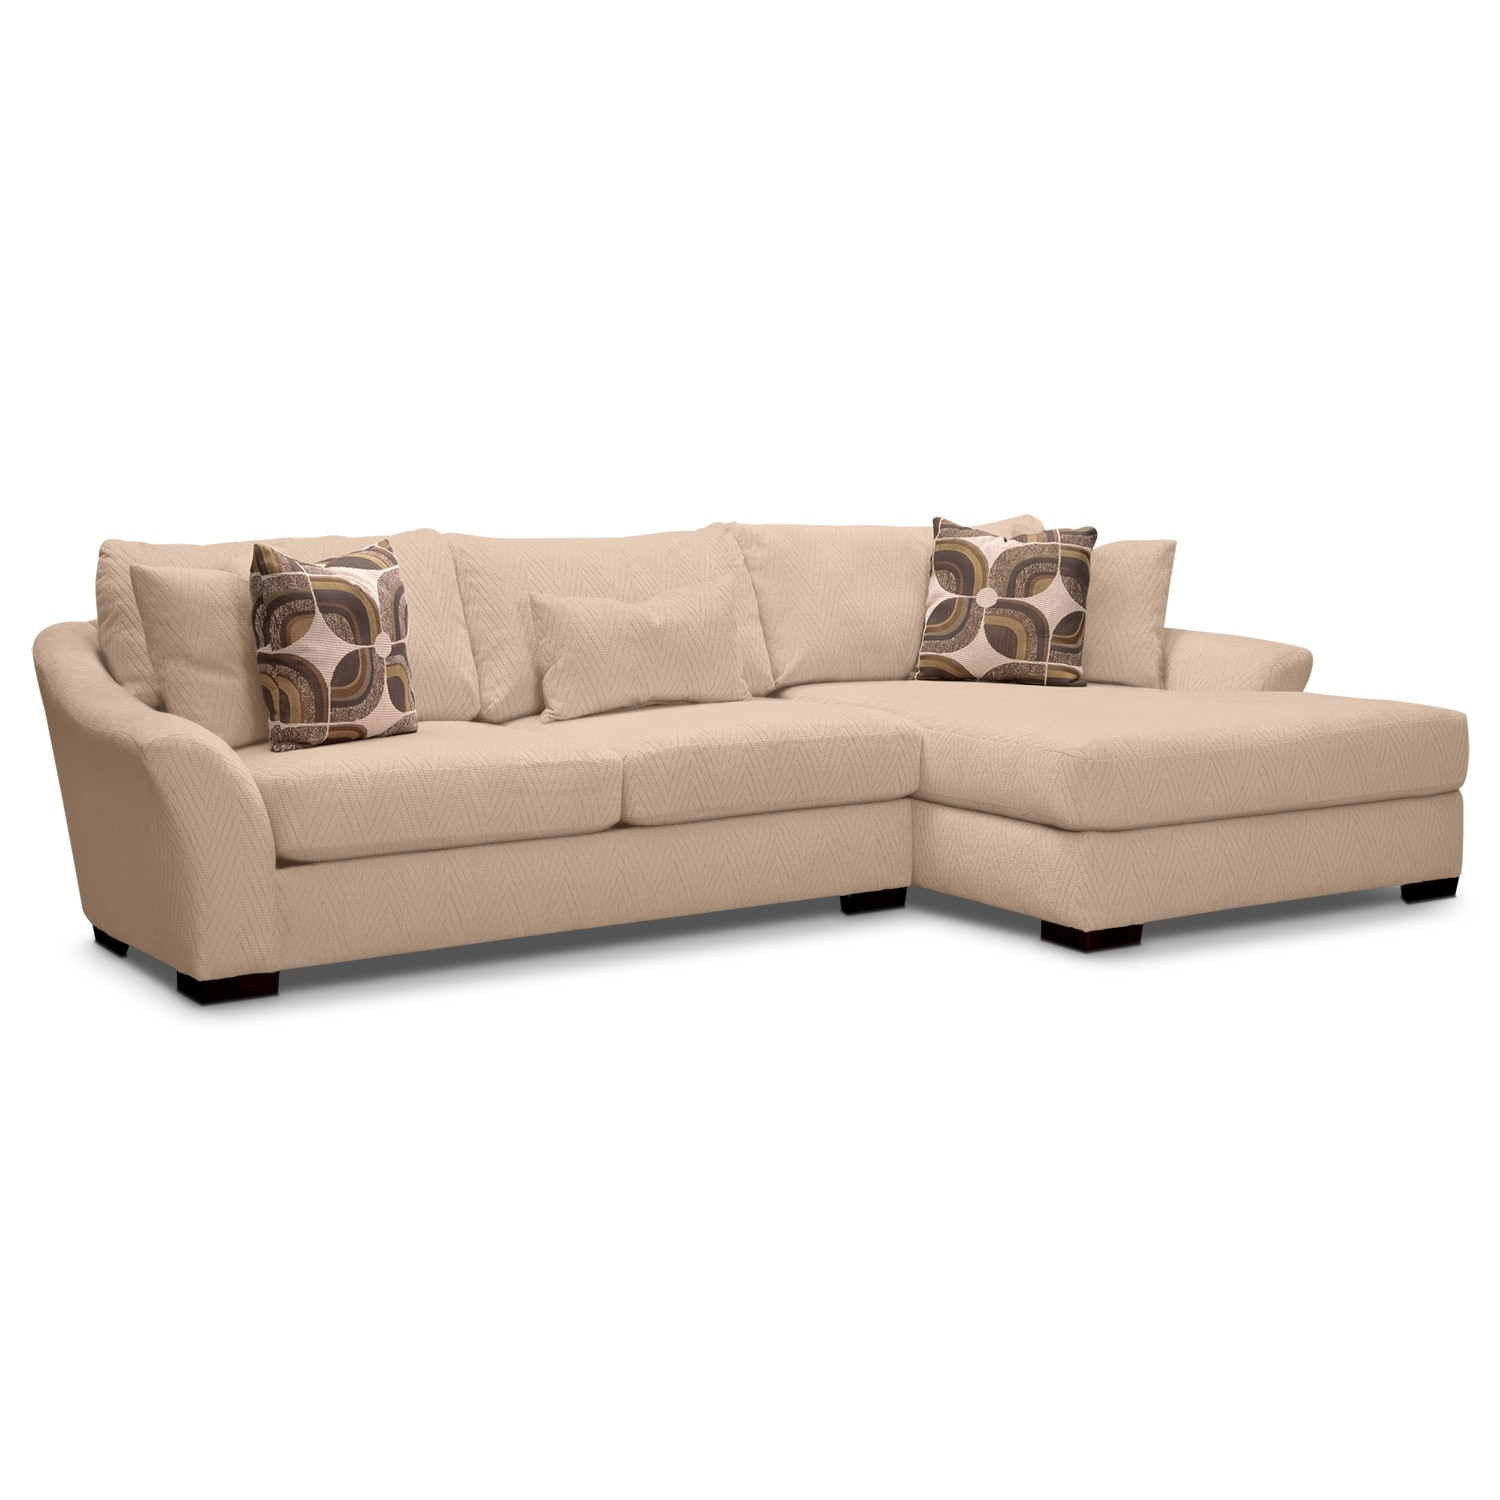 Oasis Ii Upholstery 2 Pc Sectional Reverse Value City